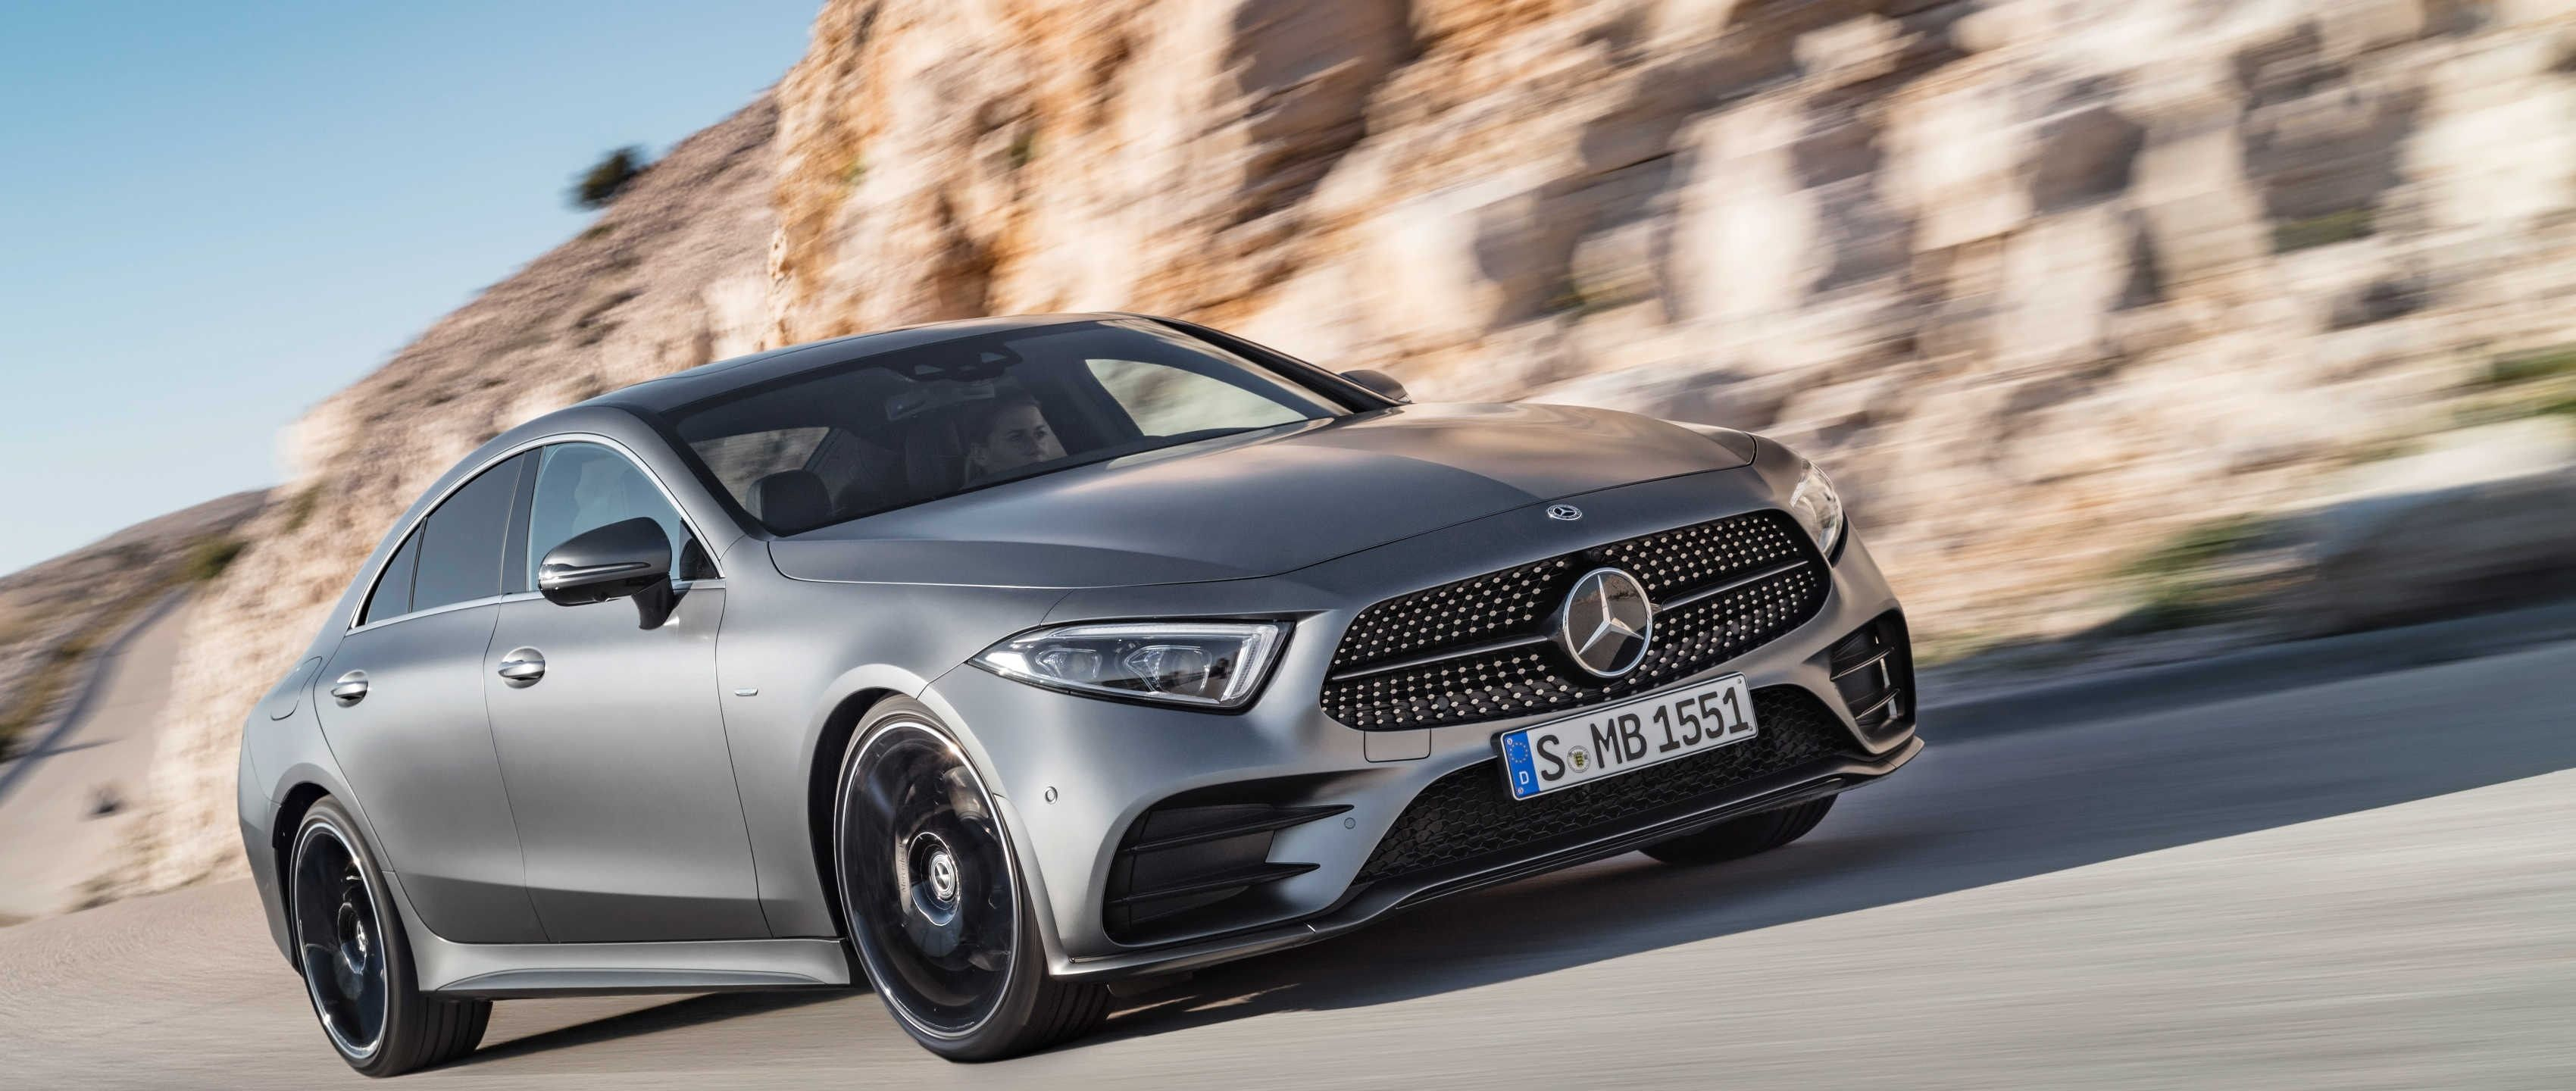 2018 Mercedes Benz Cls 450 Interior Car Review 2018 With Images